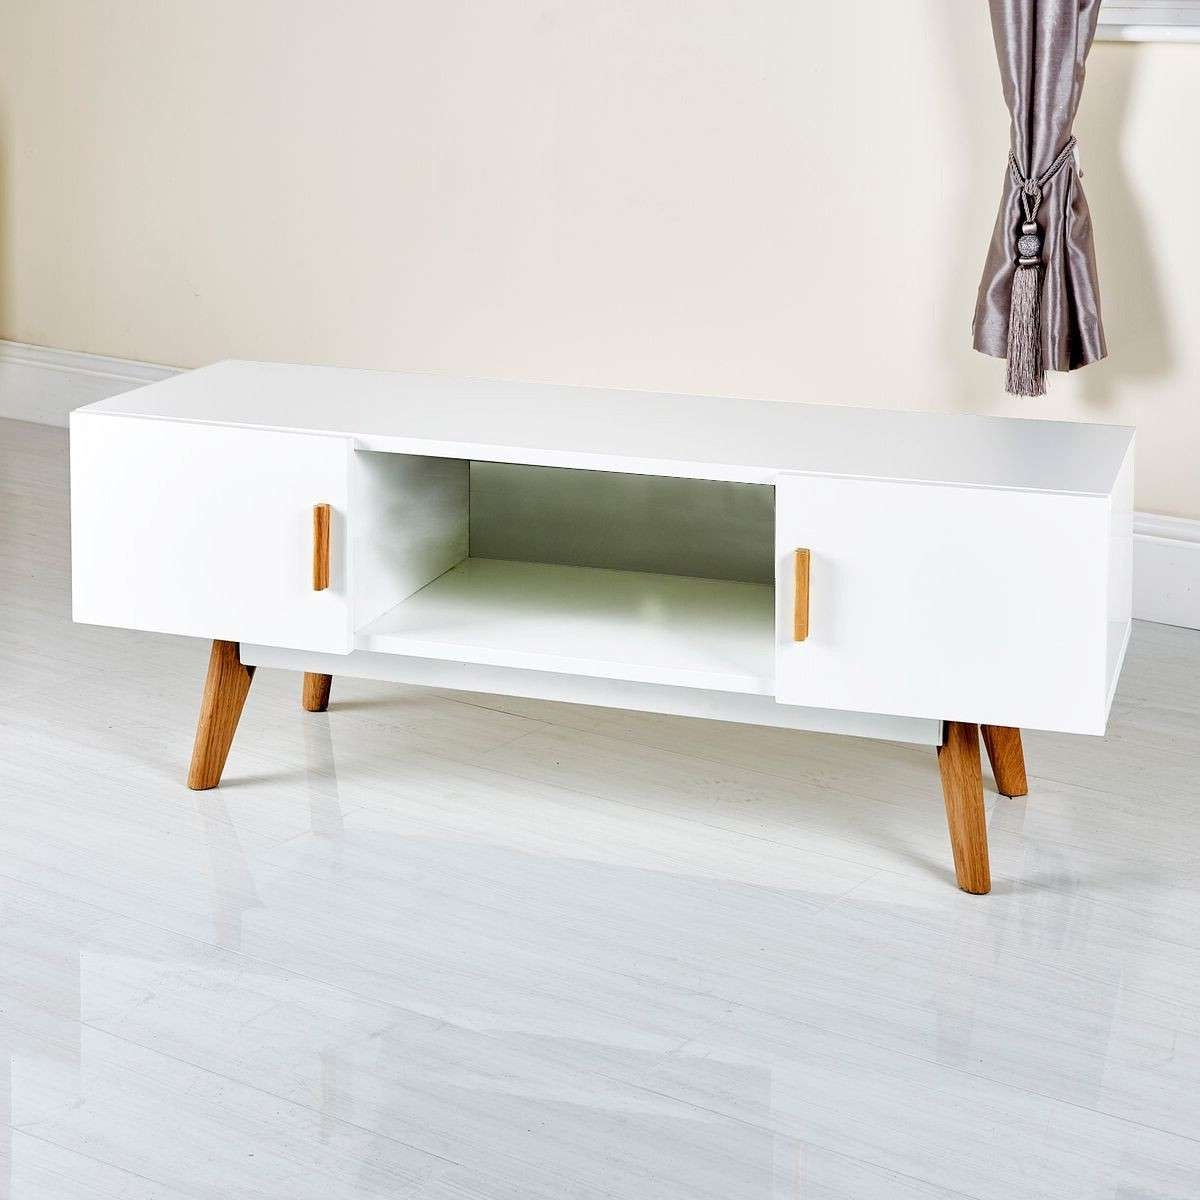 Stylish White Modern Tv Stand From Abreo Abreo Home Furniture Regarding Scandinavian Tv Stands (View 13 of 15)